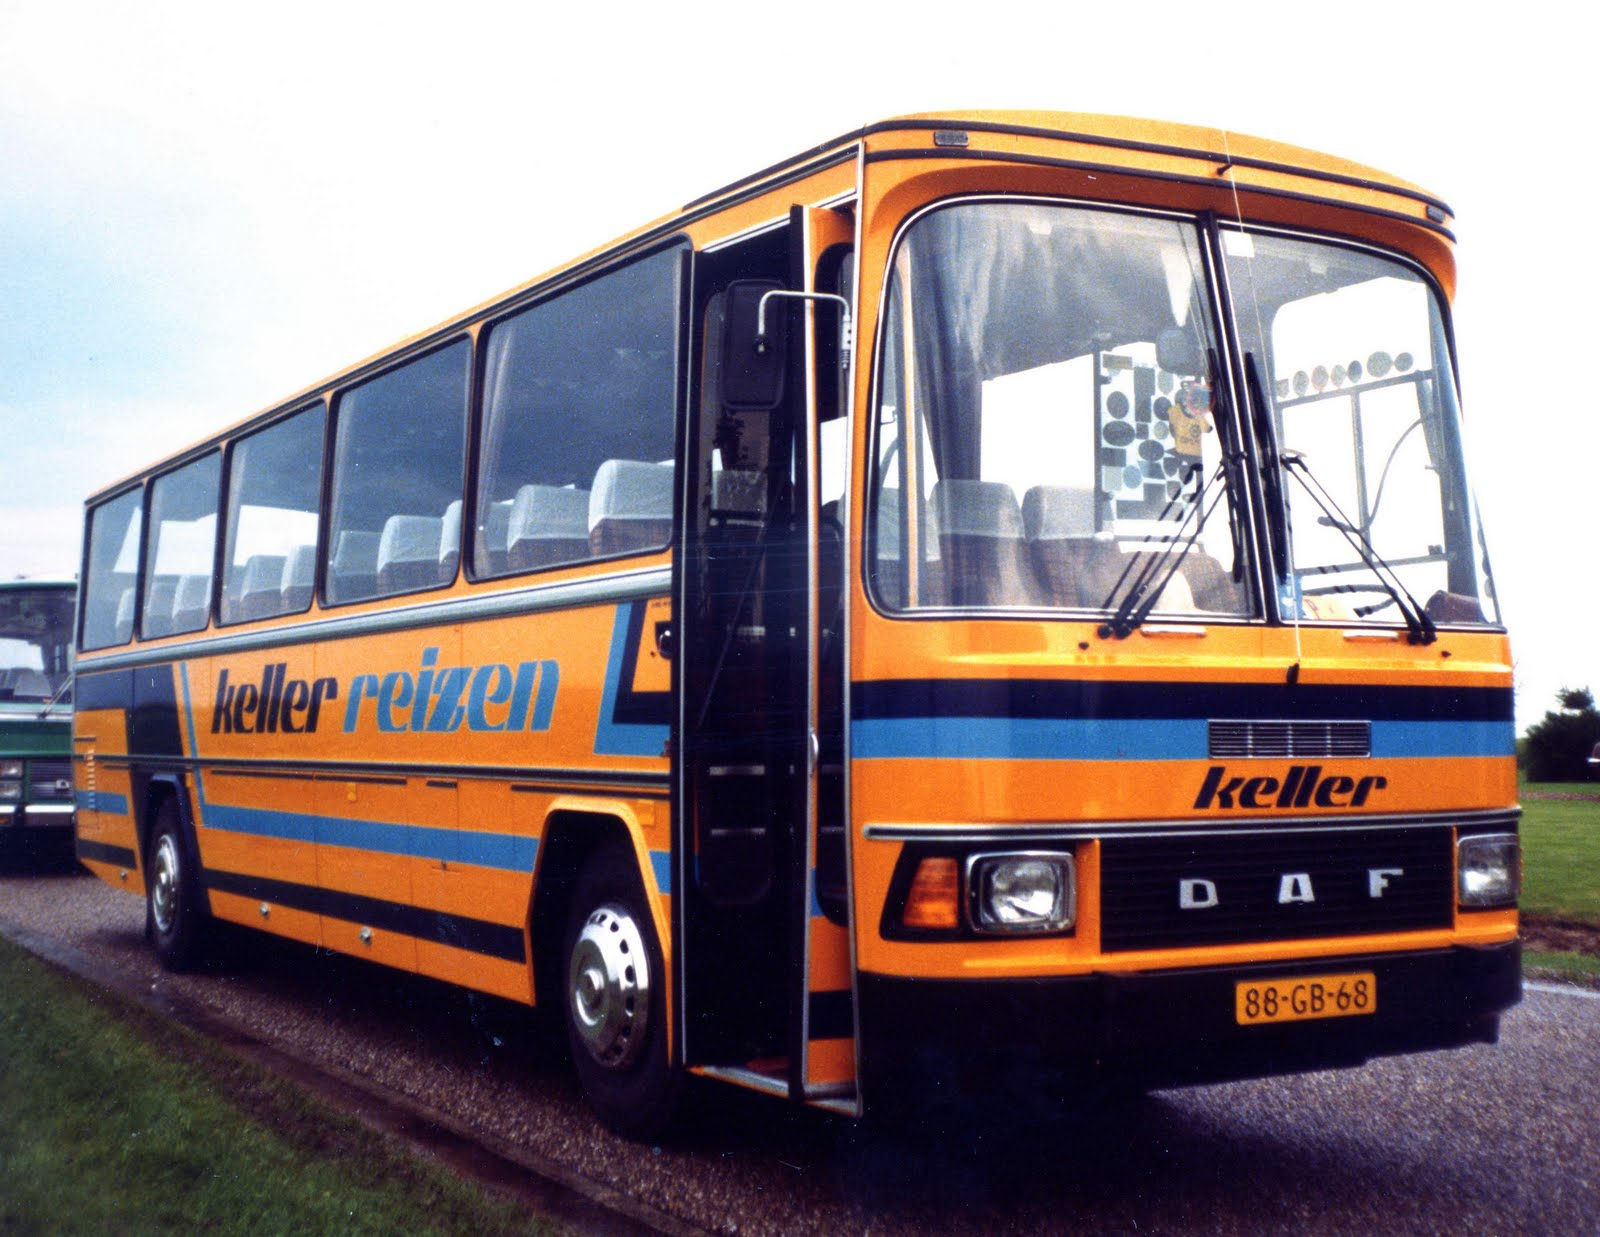 Keller 1979 18 DAF Smit Joure